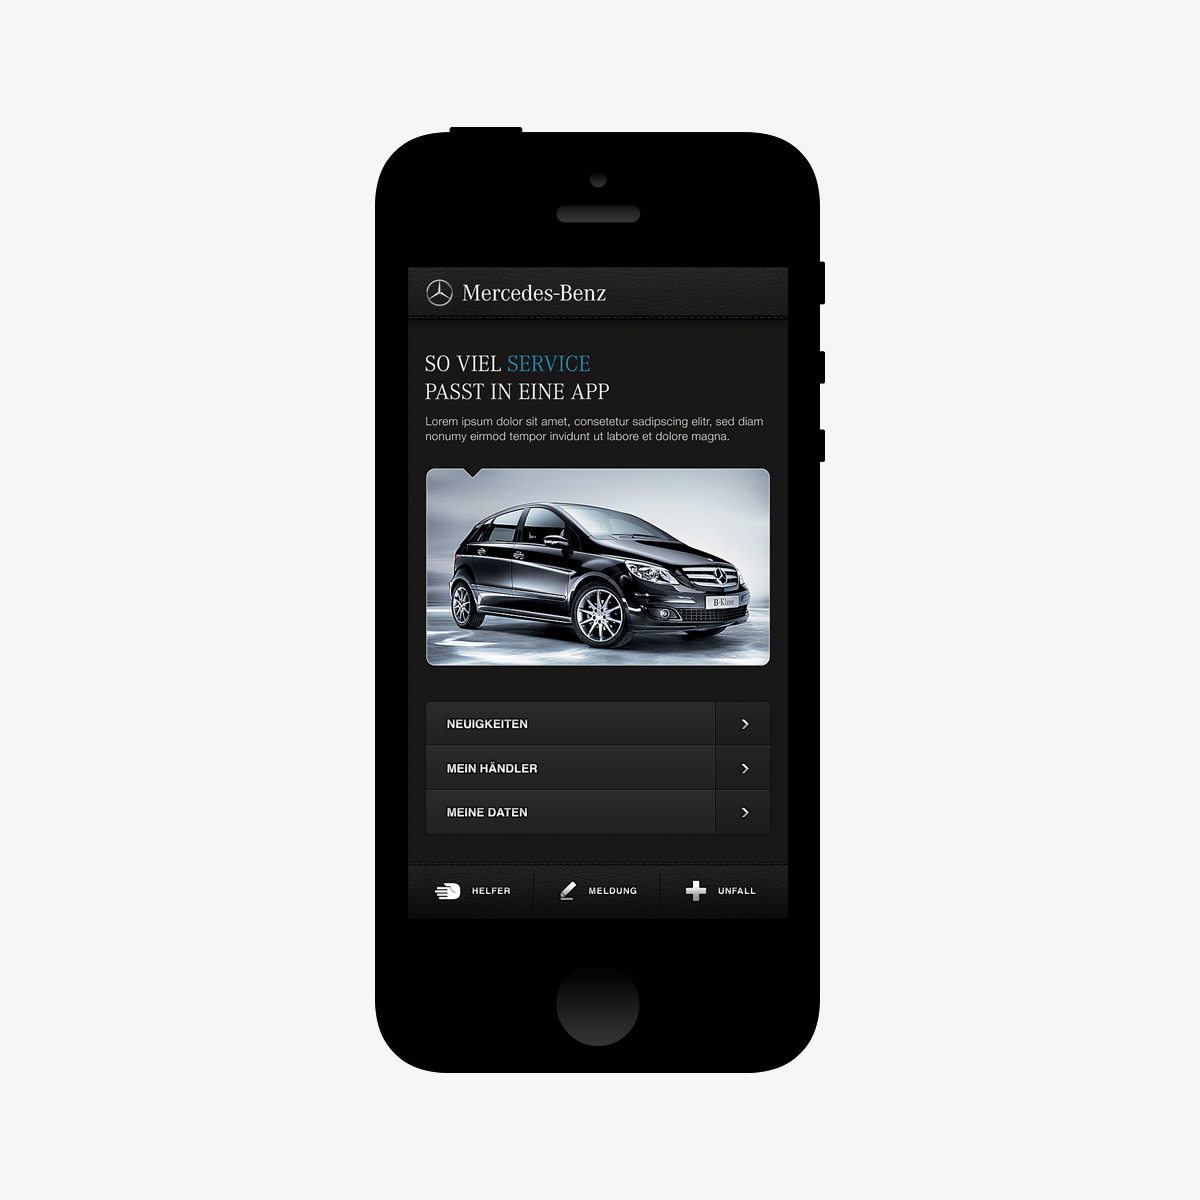 mercedes_benz_service_app_01_by_think